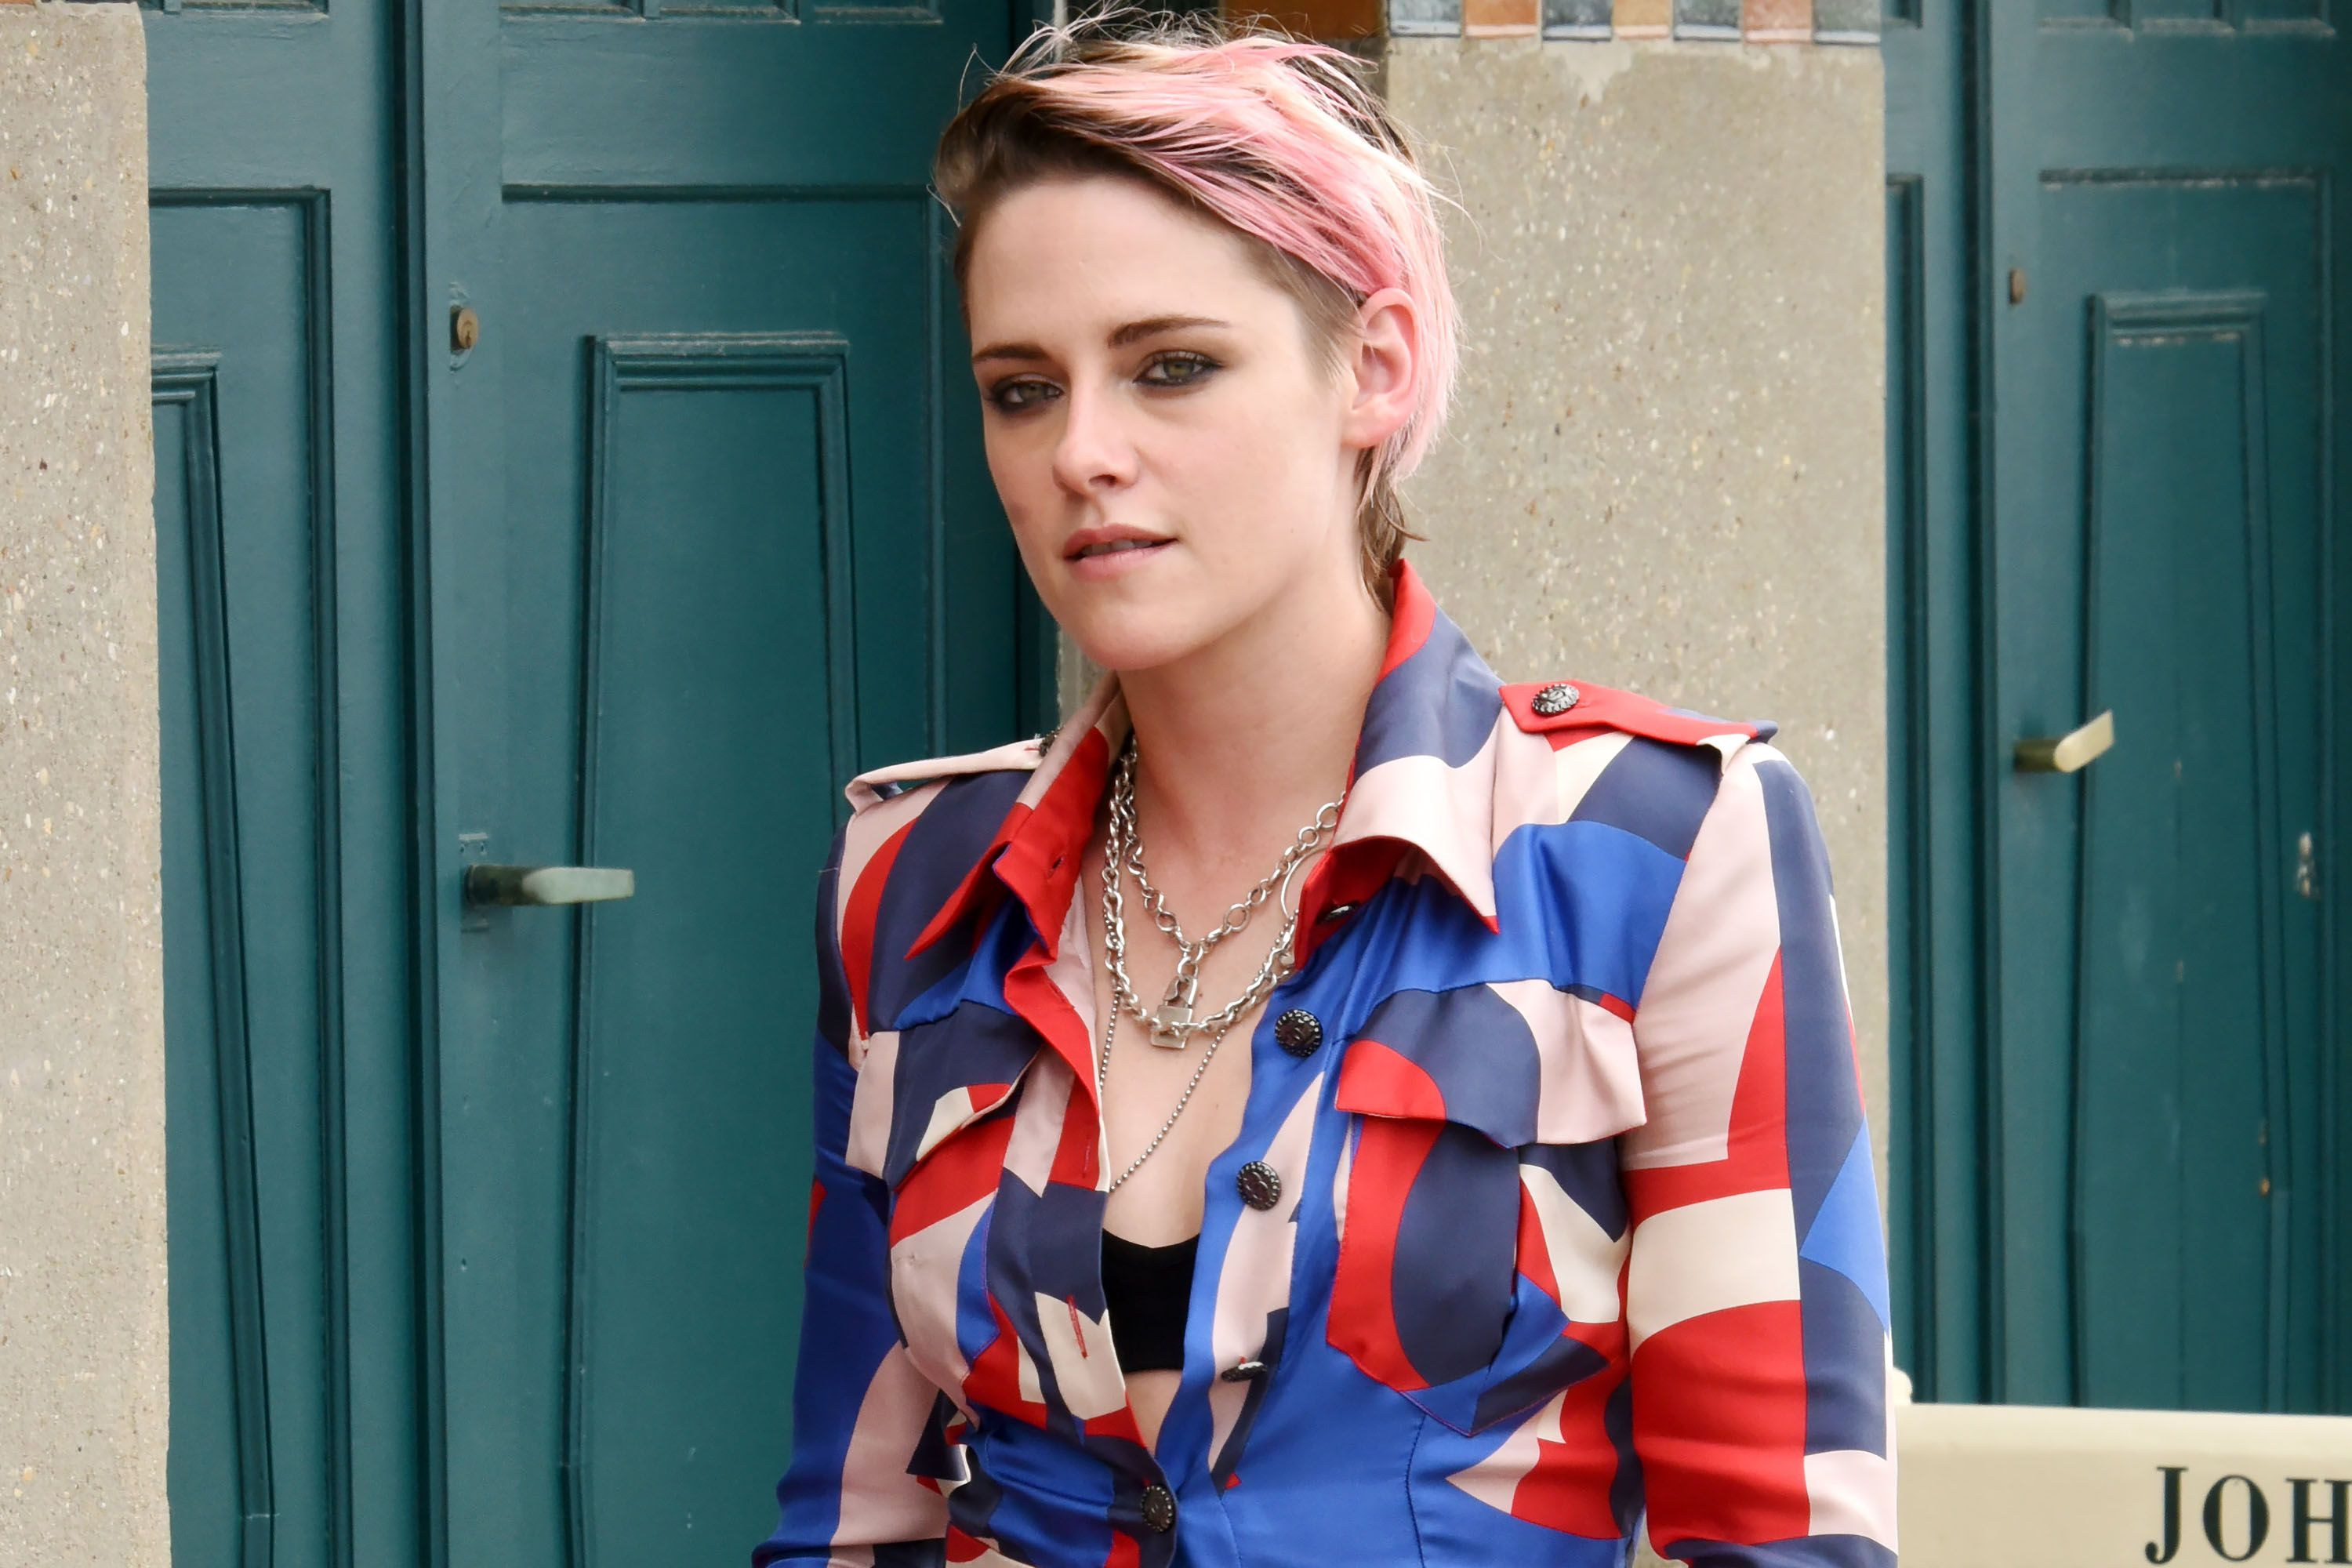 Kristen Stewart has dyed her hair pink